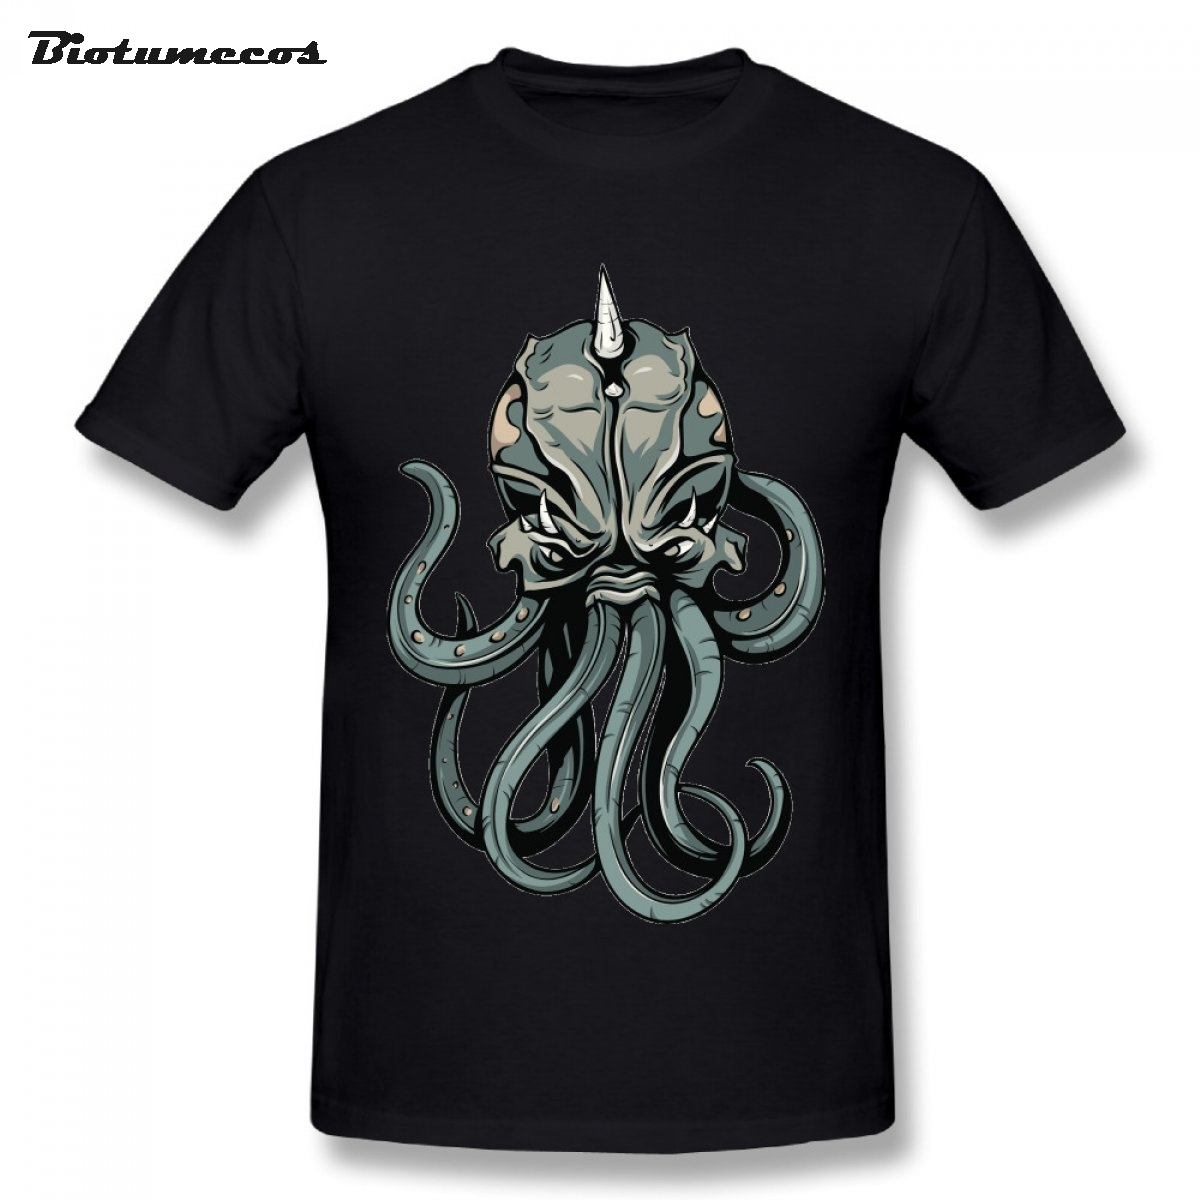 New Arrival The Horned Octopus Printed T Shirt Man Fun T Shirt 100% Cotton Short Sleeve Tees Adult Oversize Clothes Top MTDW103